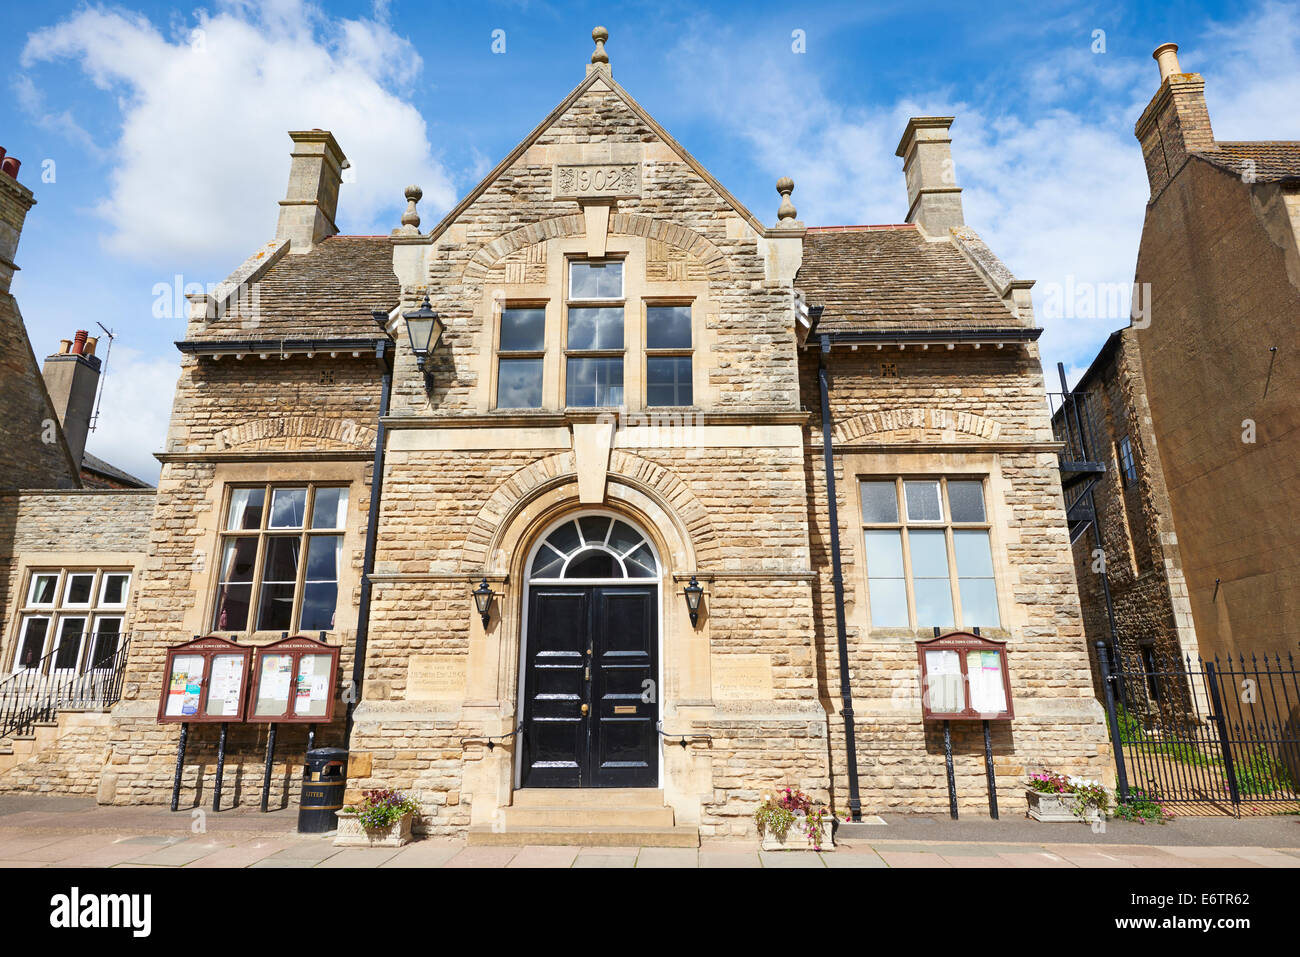 Town Council Queen Victoria Hall West Street Oundle Northamptonshire UK - Stock Image